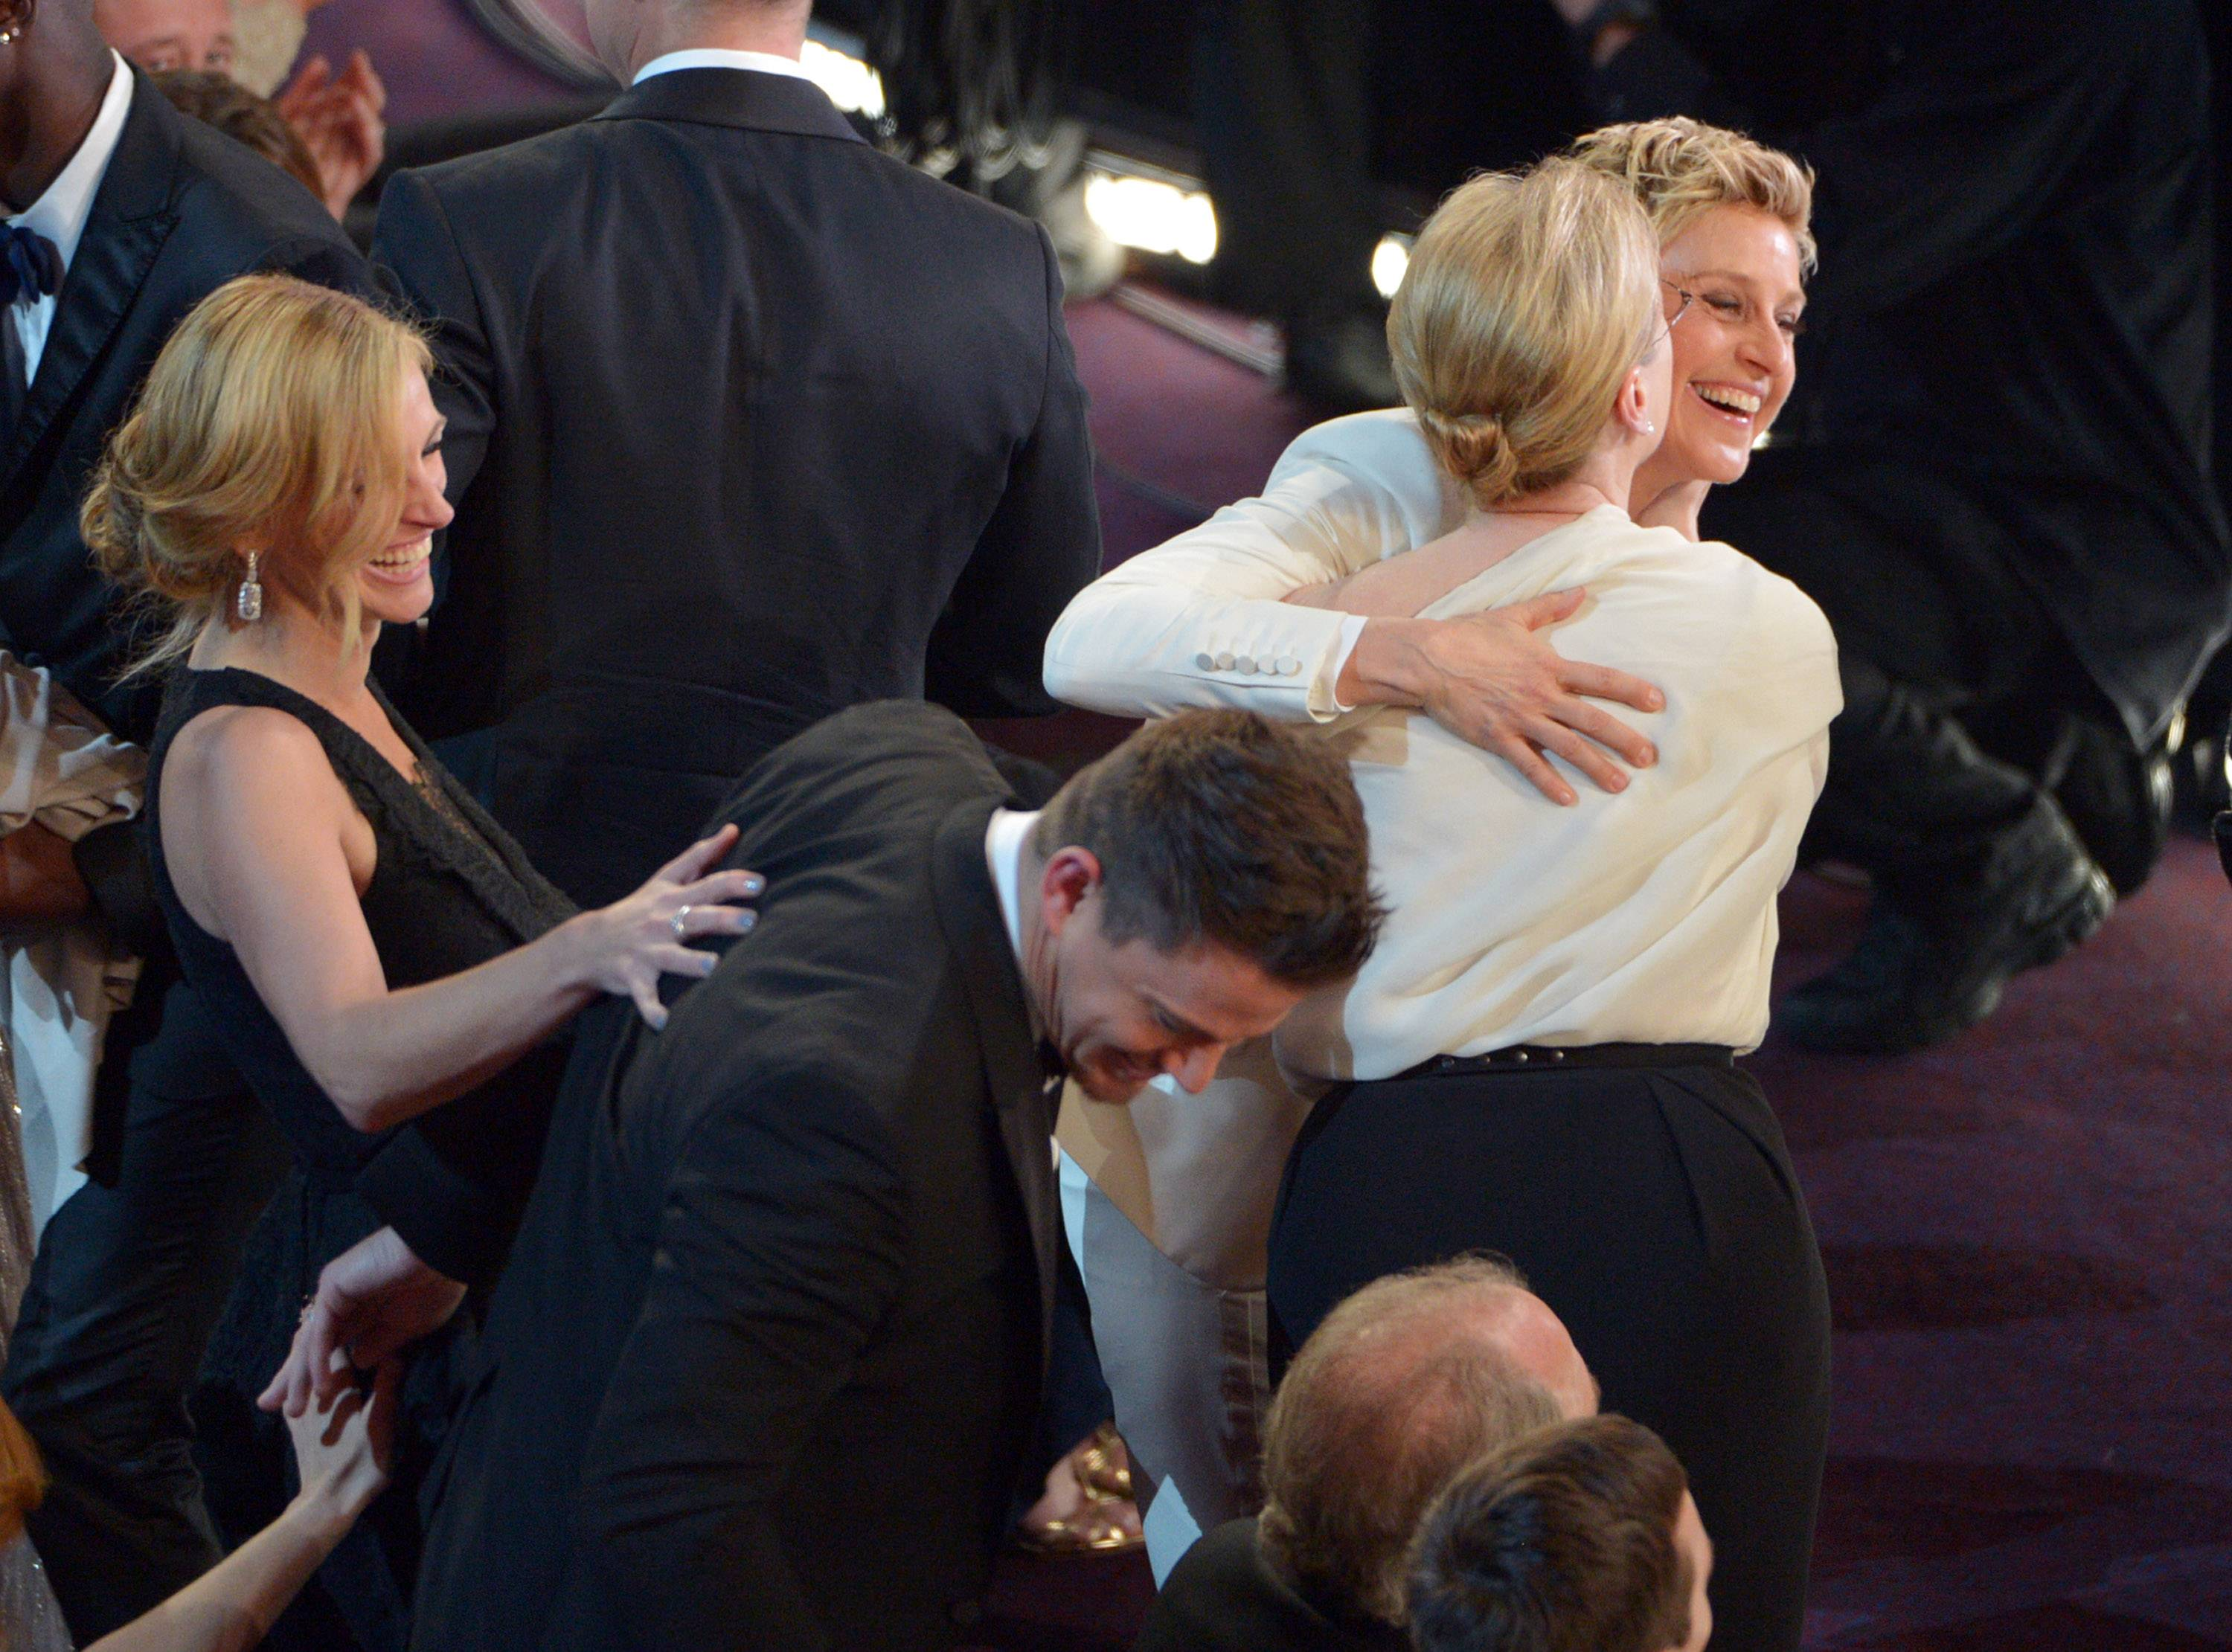 Julia Roberts, from left, Channing Tatumt, Meryl Streep and Ellen DeGeneres, laugh in the audience during the Oscars.